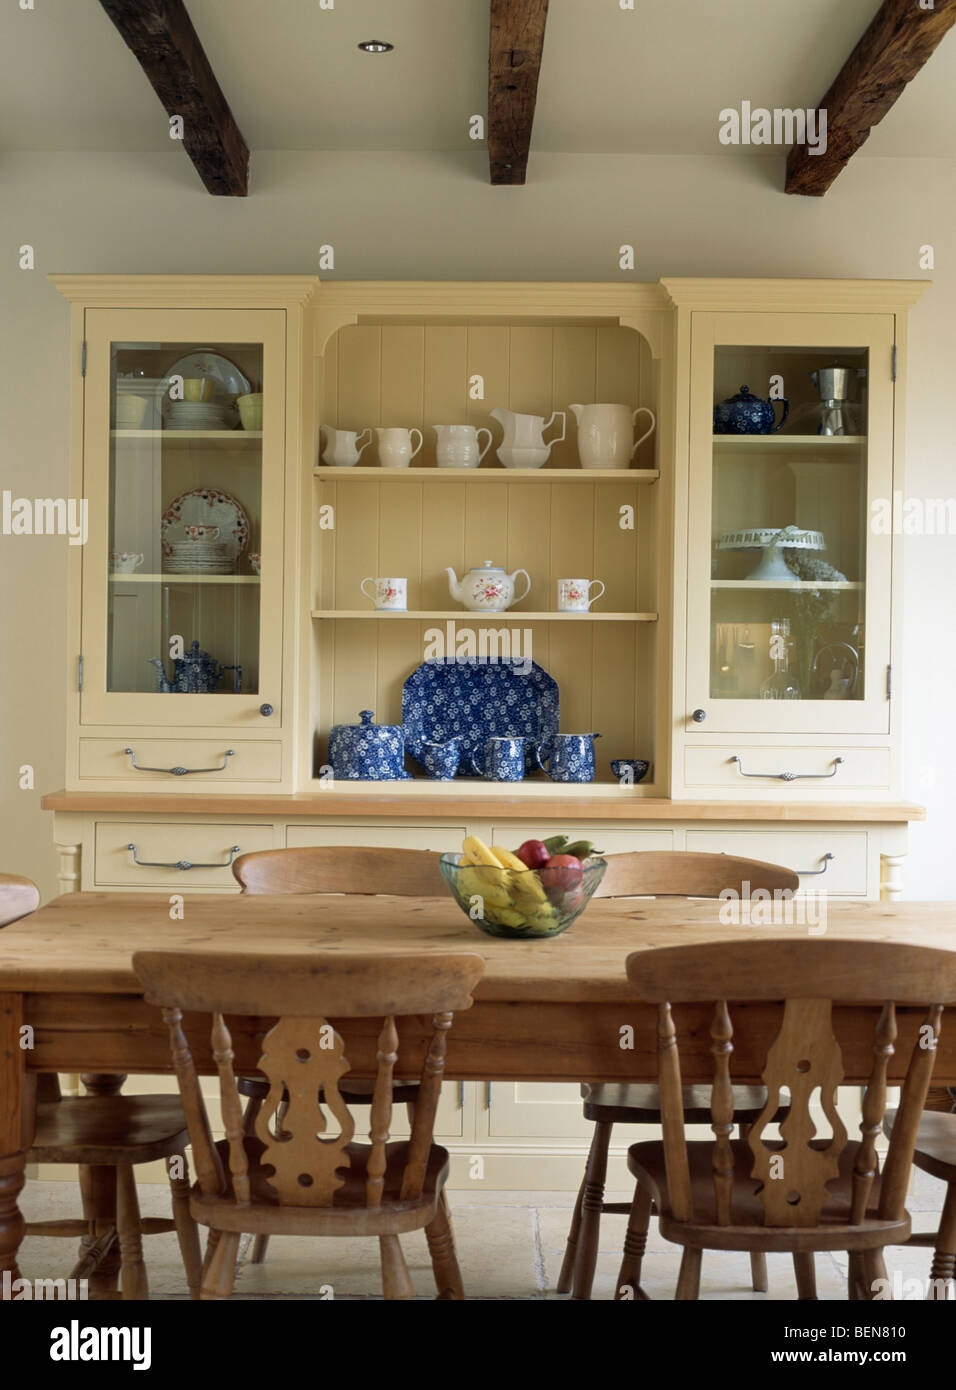 Cream Dresser With Glazed Doors In Country Dining Room Old Pine Table And Chairs